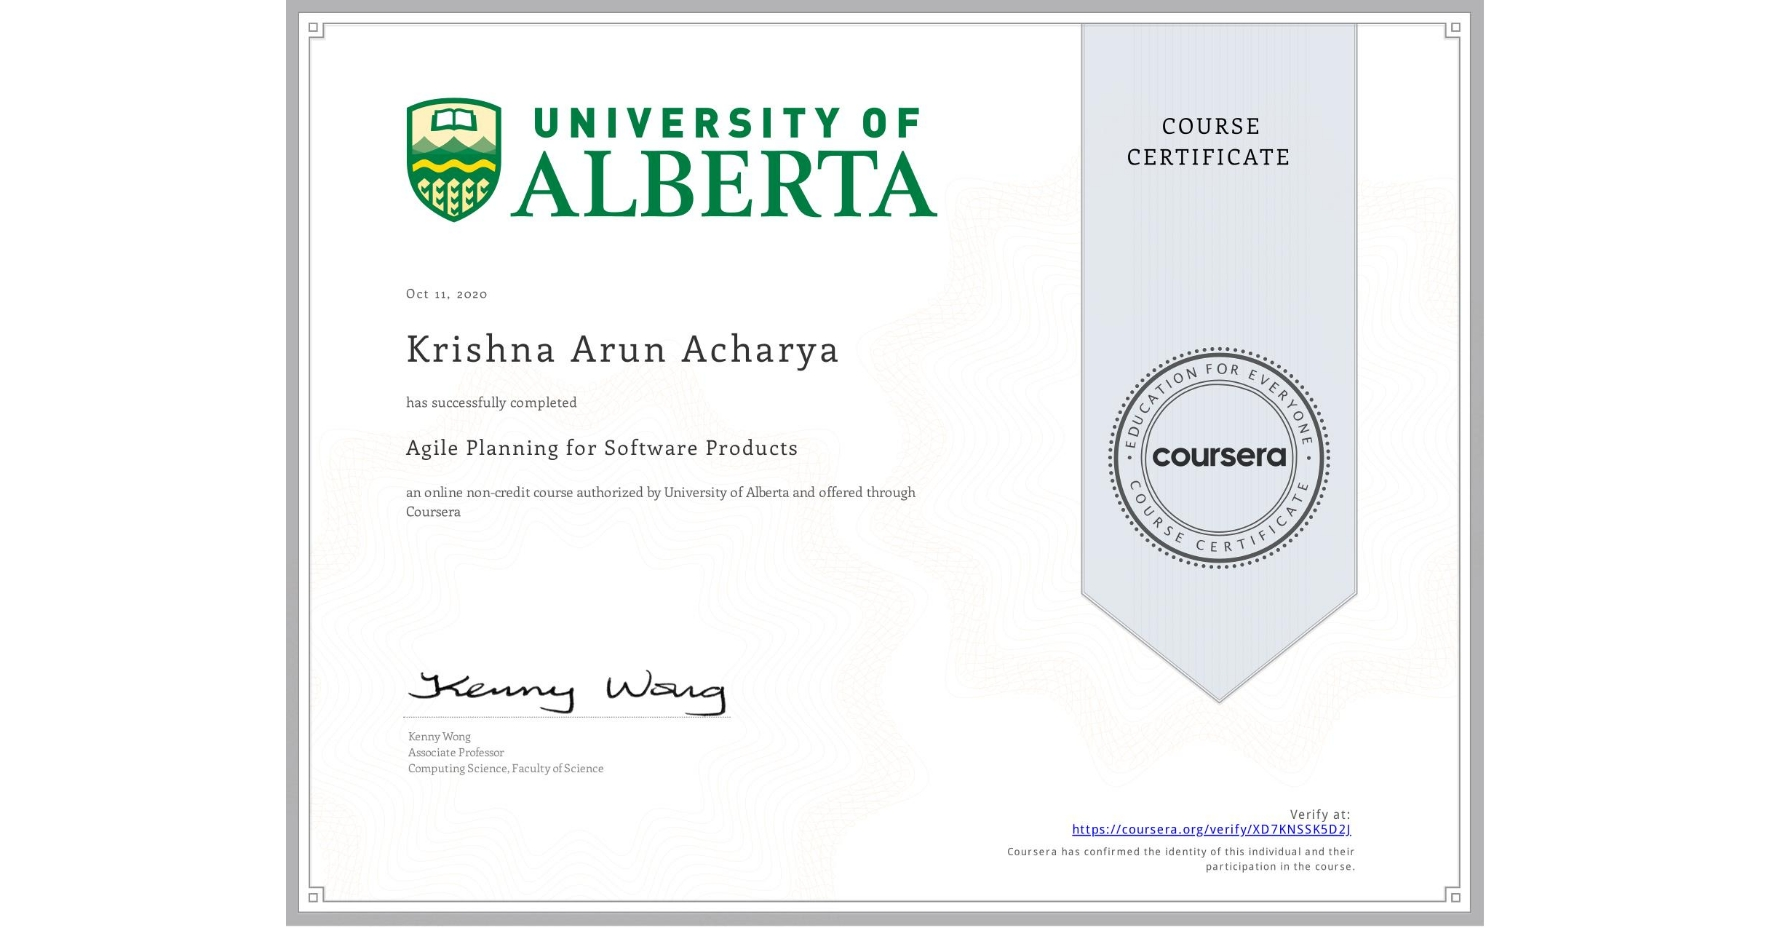 View certificate for Krishna Arun Acharya, Agile Planning for Software Products, an online non-credit course authorized by University of Alberta and offered through Coursera